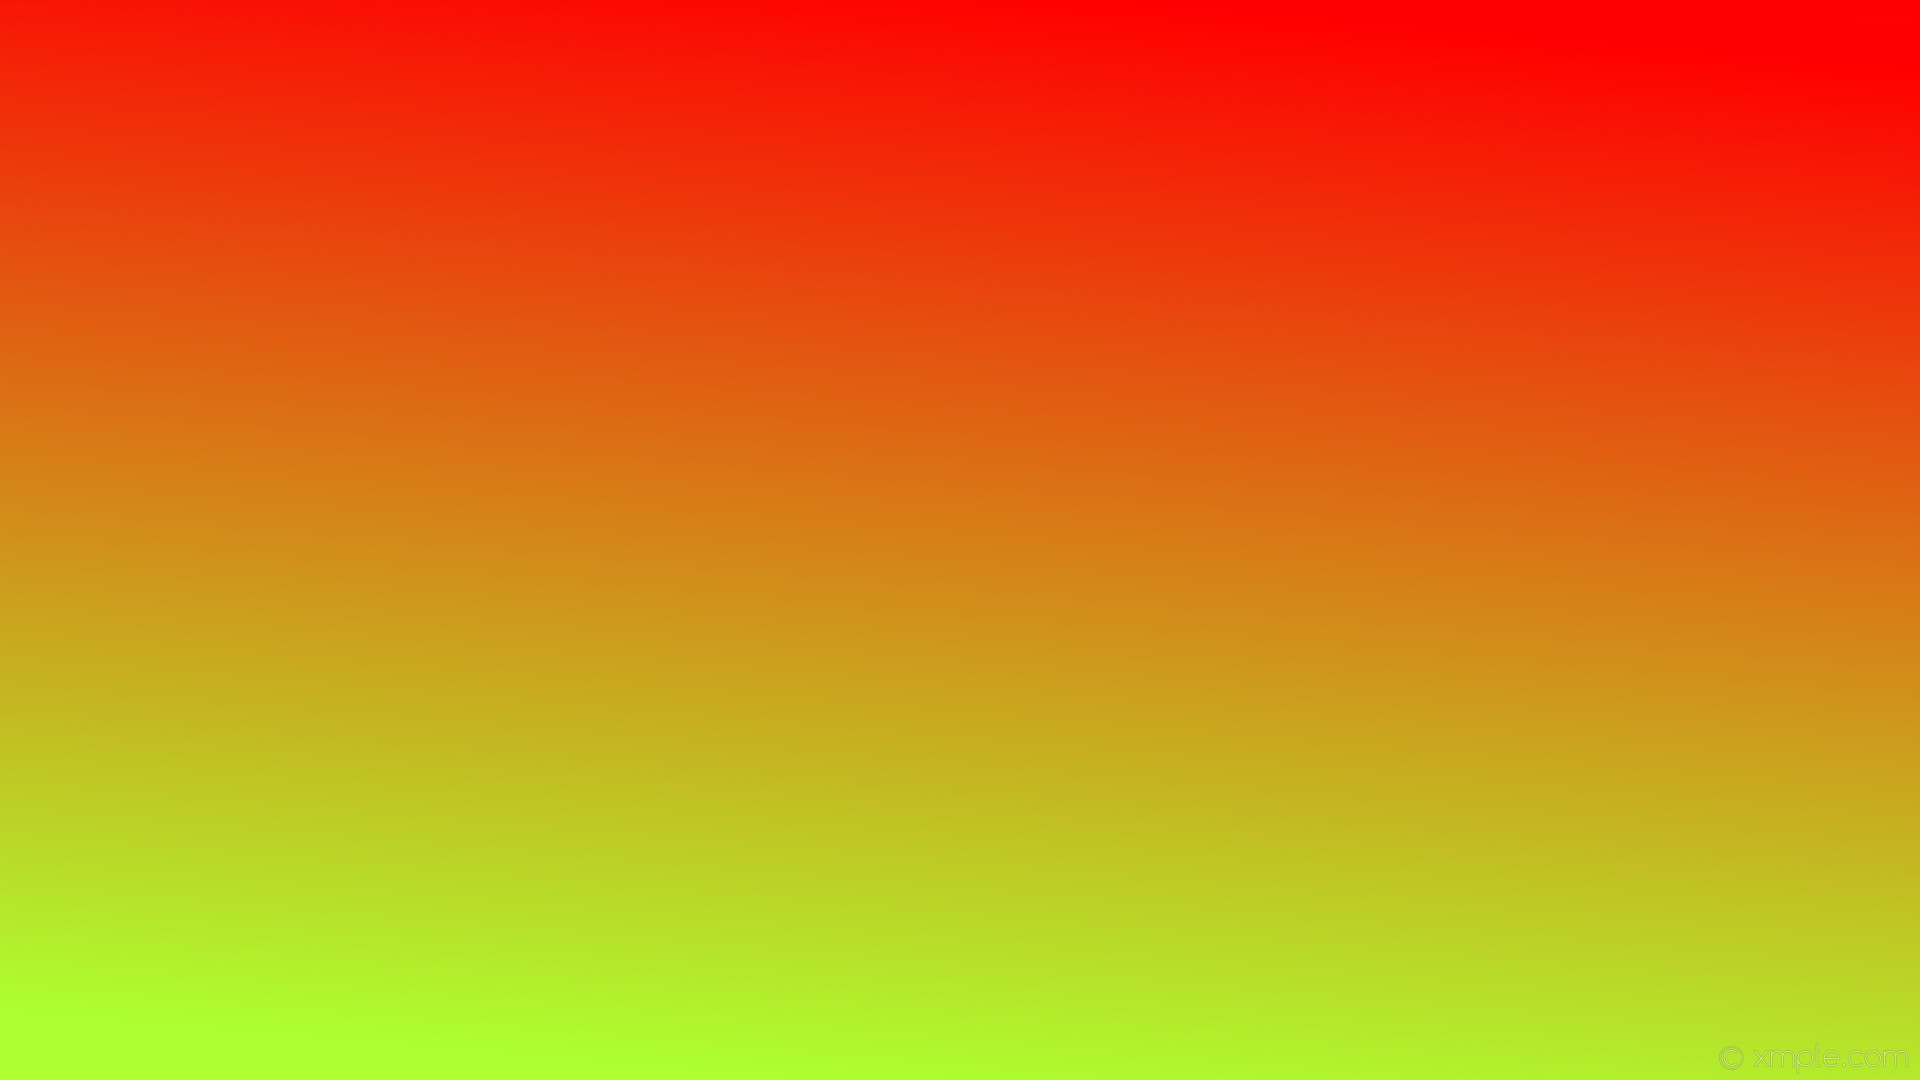 Yellow And Red Wallpaper 59 Images